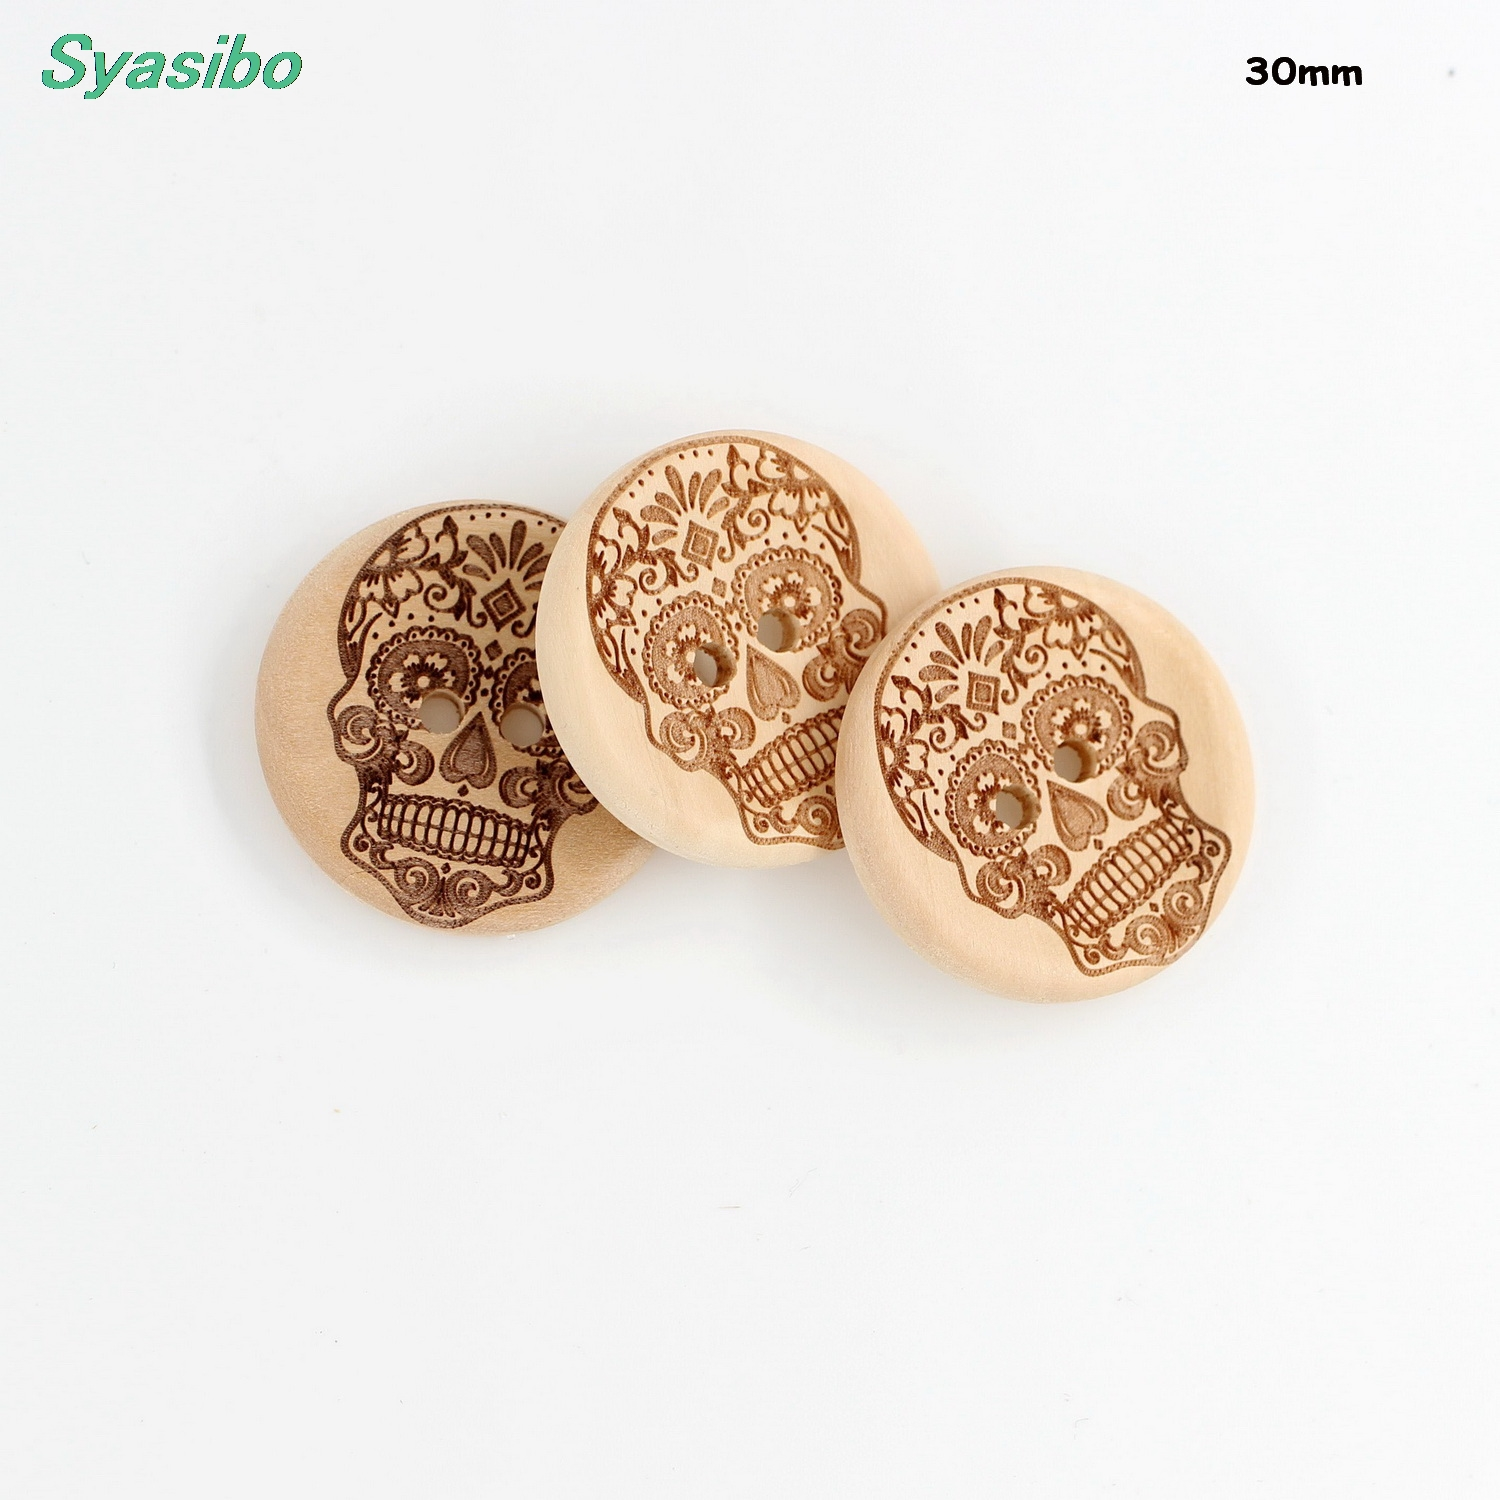 (20pcs/lot) <font><b>30mm</b></font> Unfinished Natural Wooden <font><b>Button</b></font> Supplies Skull Sewing <font><b>Button</b></font> Party Deco 1.2